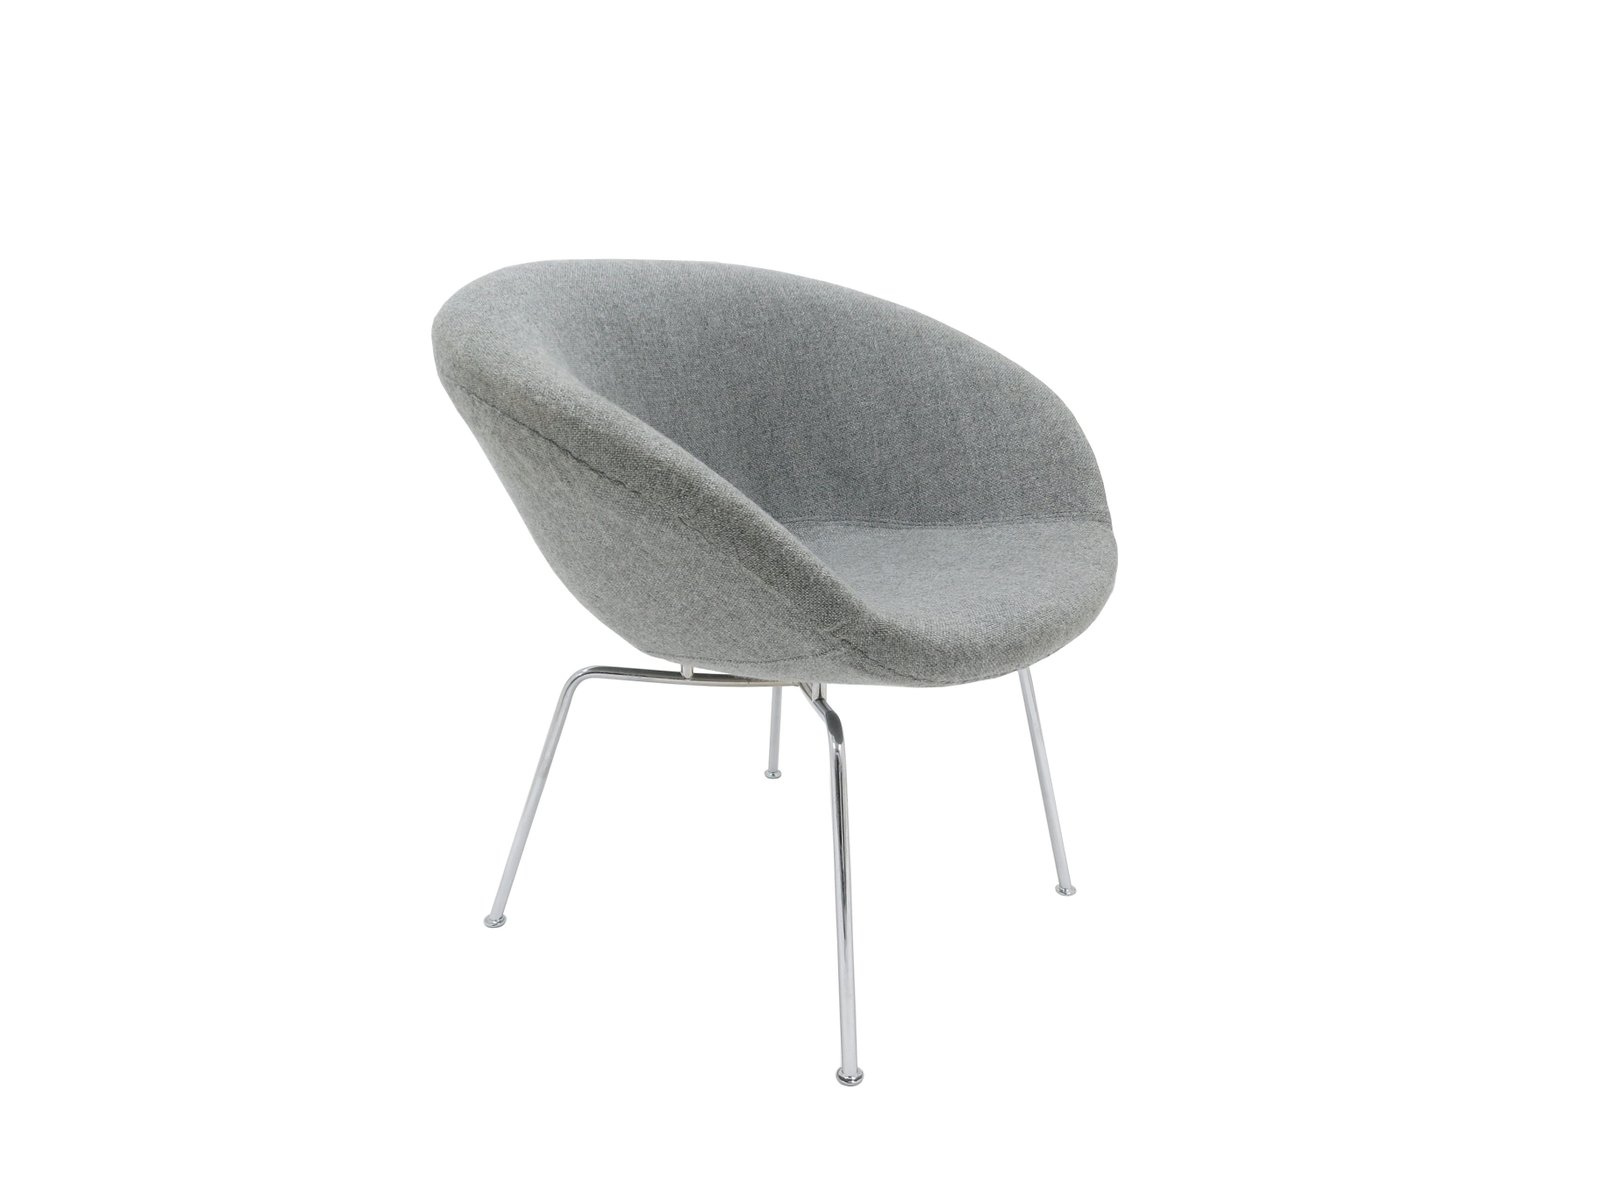 wheelchair with pot cafe chairs wooden danish chair by arne jacobsen for fritz hansen 1950s